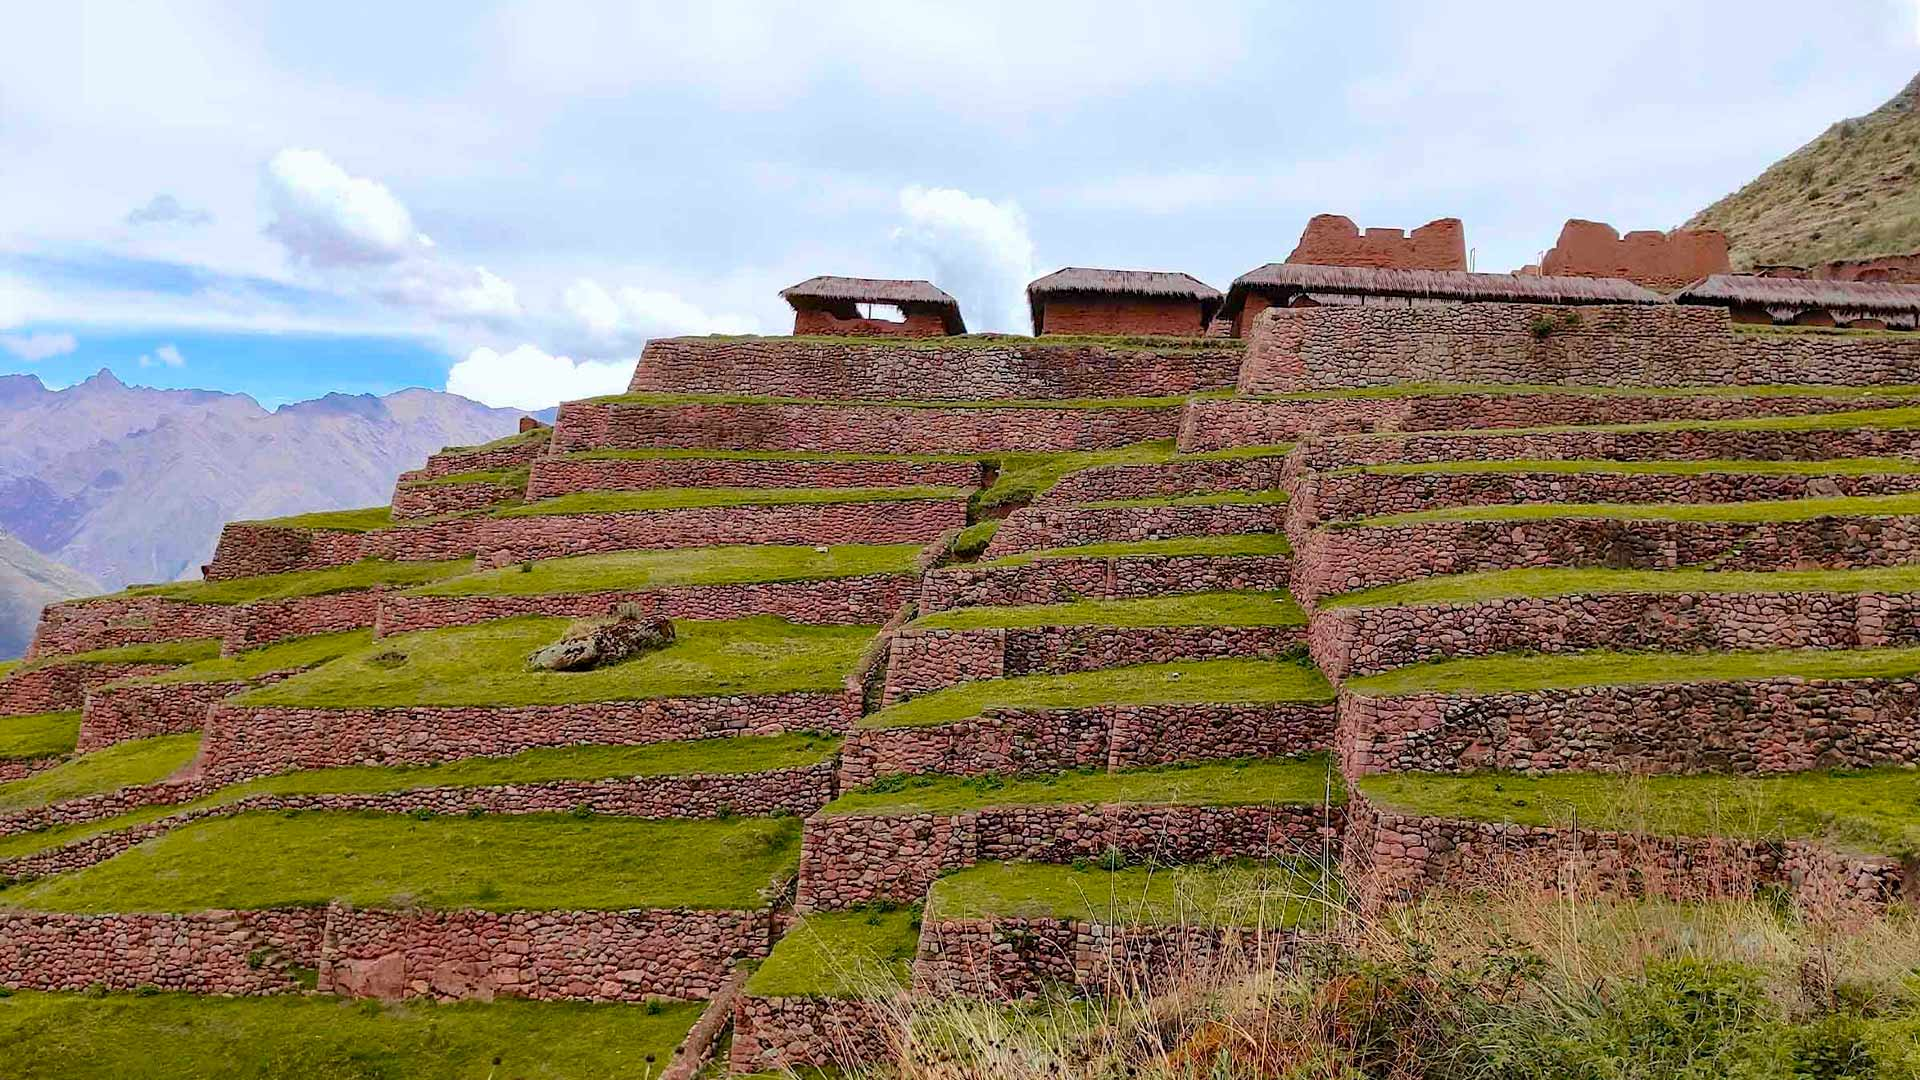 Photo of the terraces of the archaeological site of Huchuy Qosqo